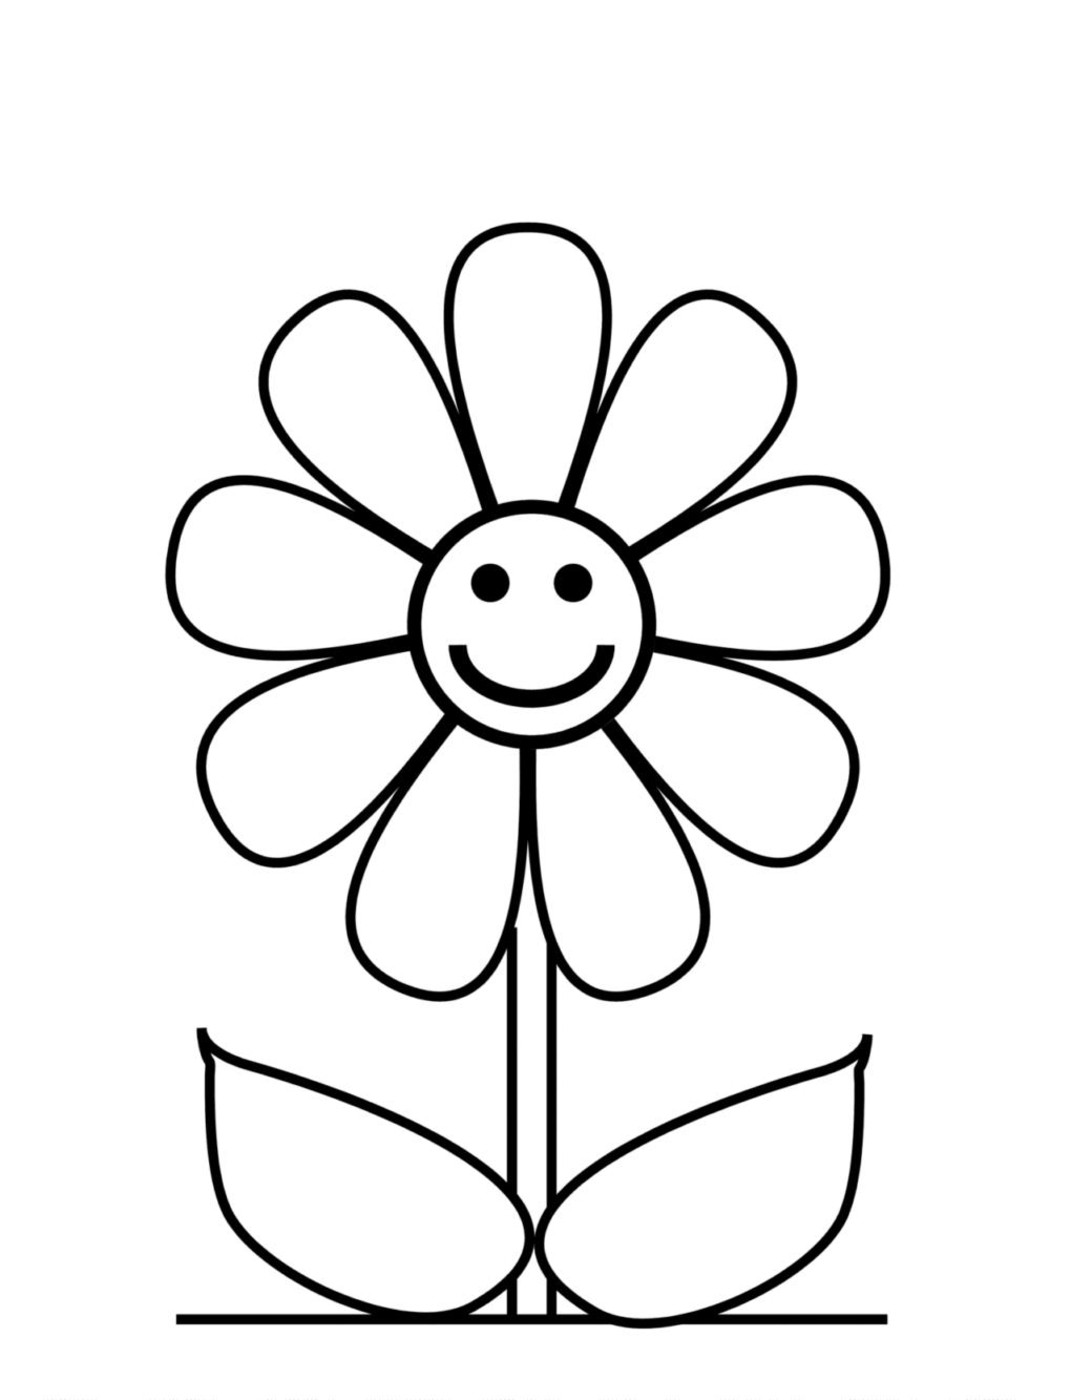 flowers coloring page free easy to print flower coloring pages tulamama page coloring flowers